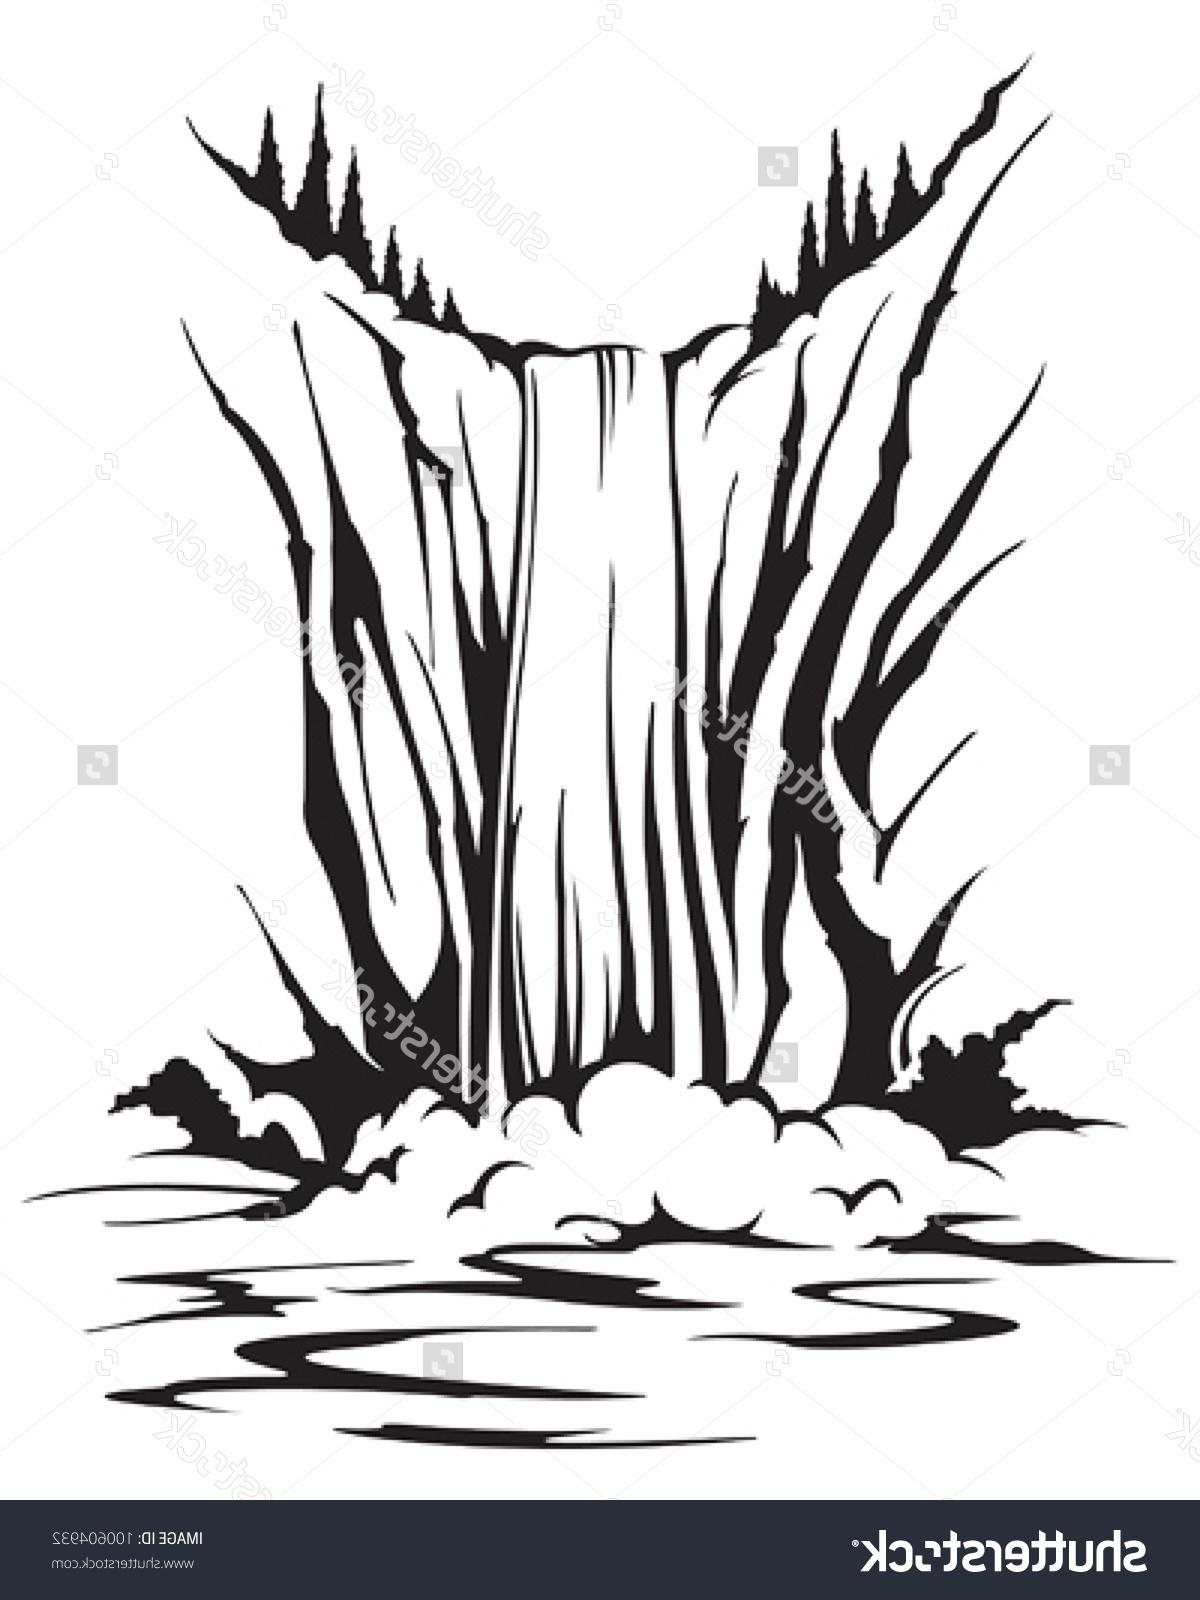 waterfall clipart black and white 10 187 clipart station